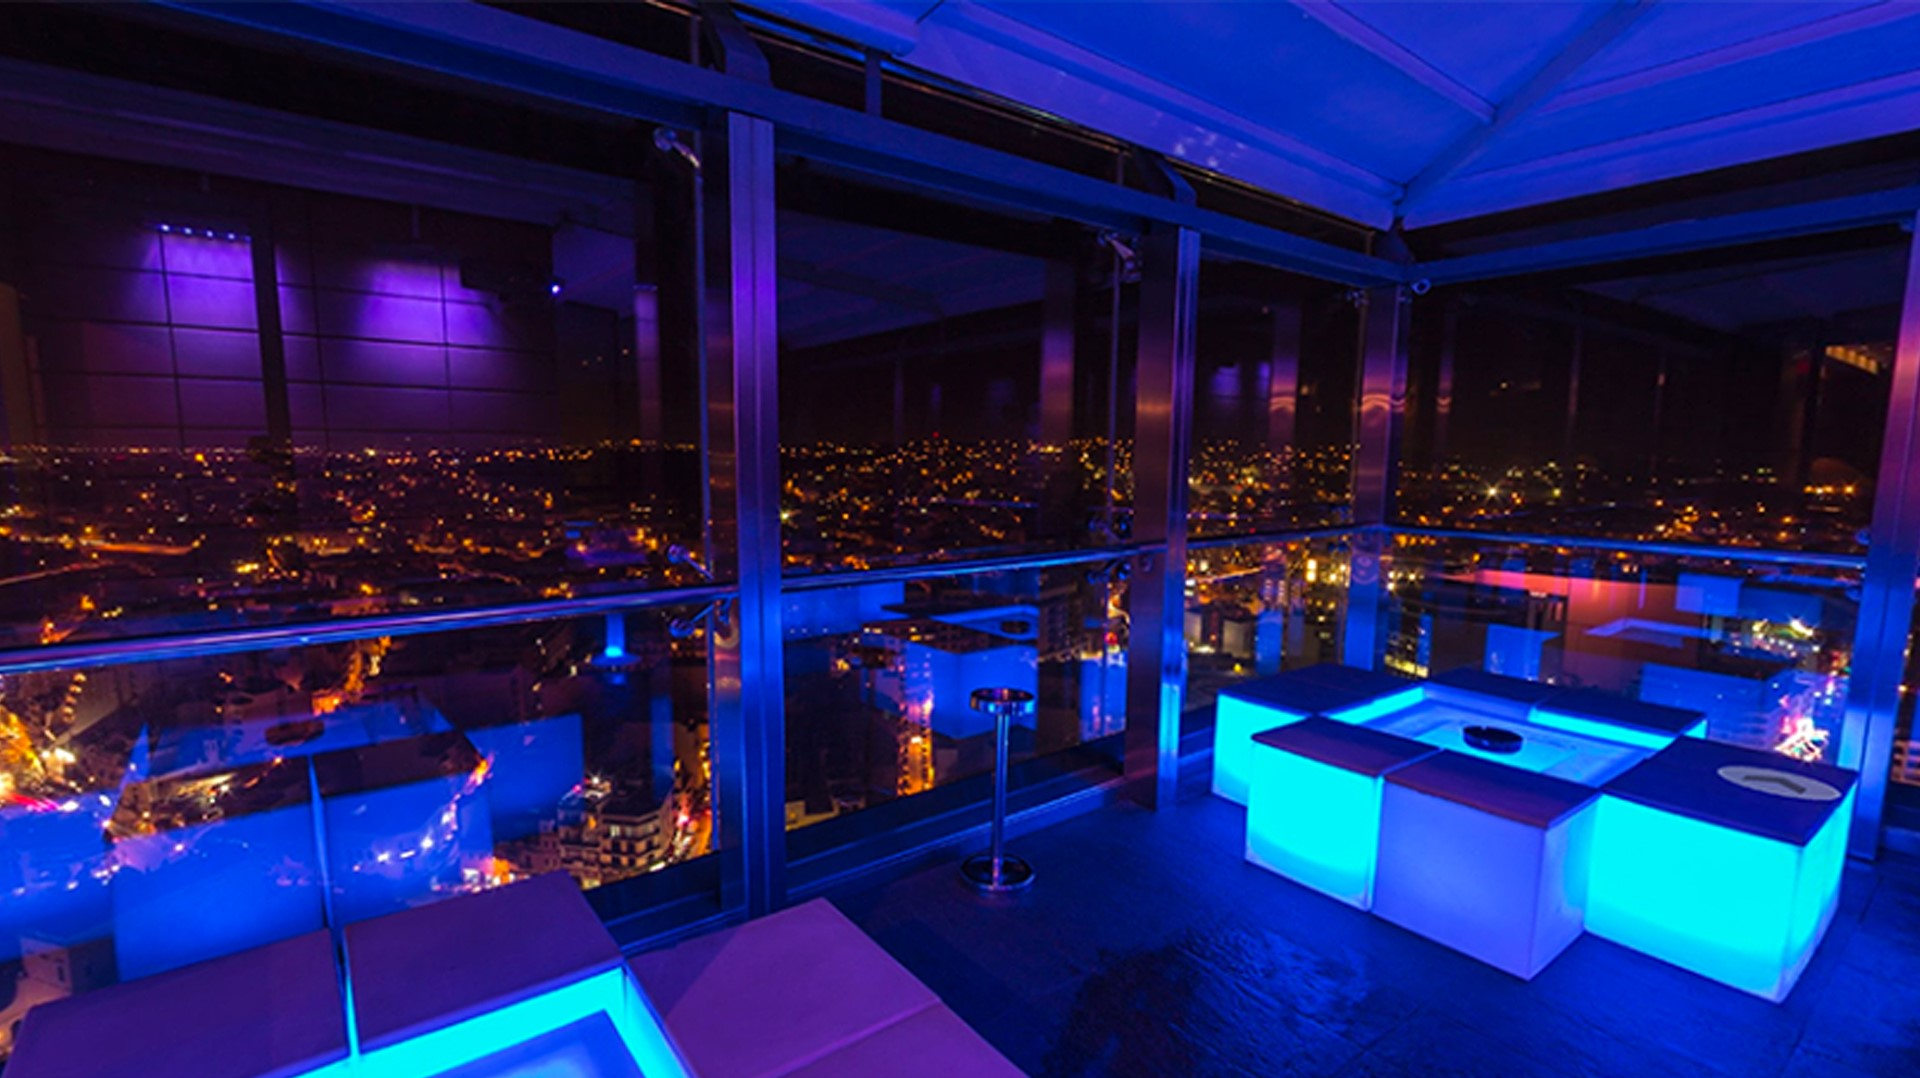 Level 22, the lavish Portomaso venue for the Electrogas party attended by the PM. Photo: Guidememalta.com